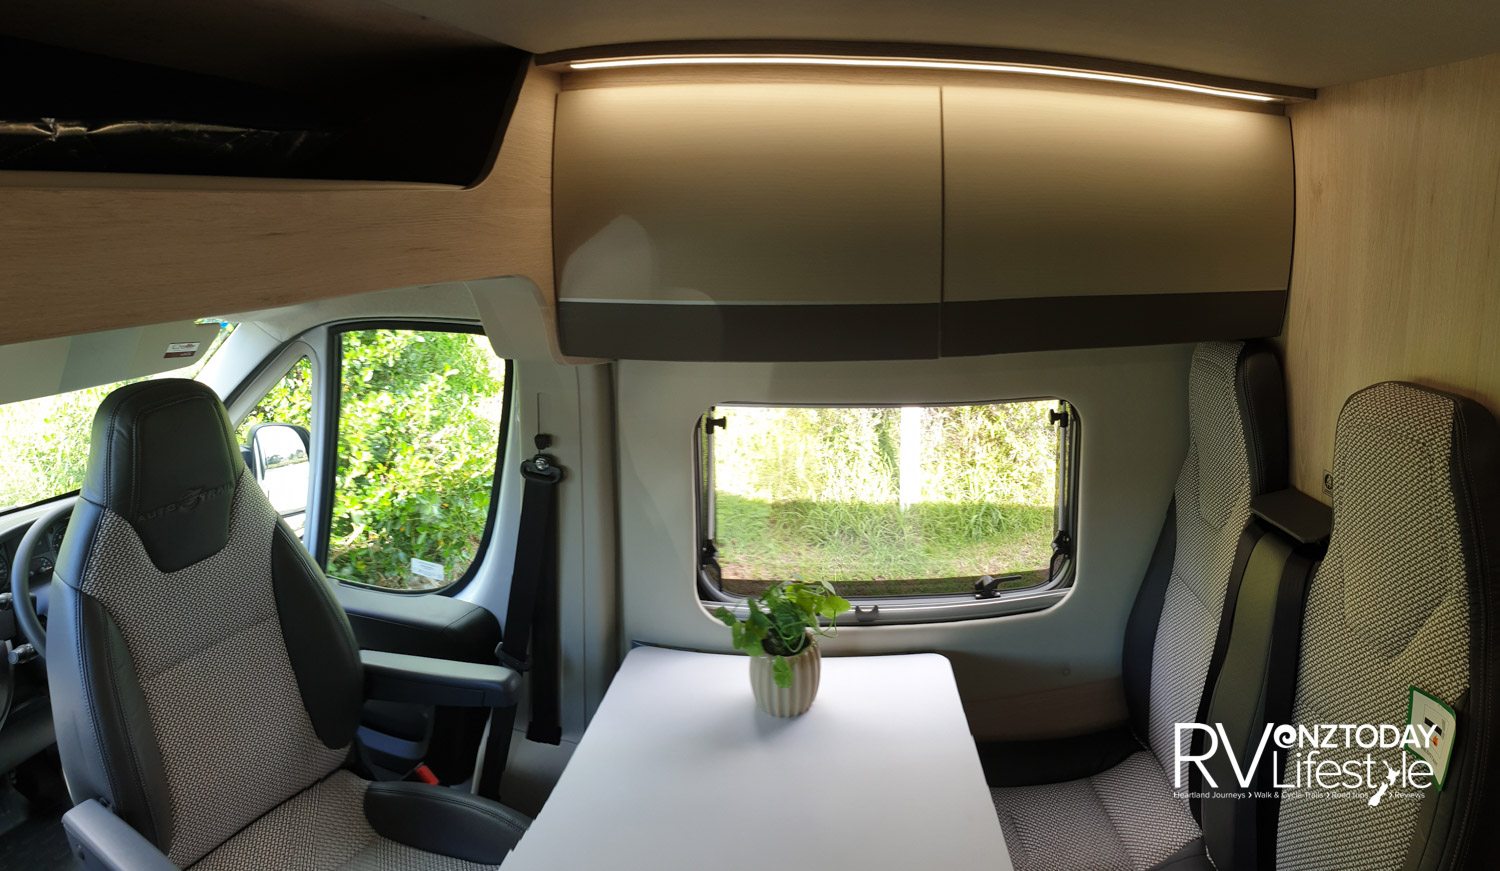 The front cab seats swivel for extra dining area seating, storage locker above the window. Plenty of light with large windows that have fitted fly screens and blinds, LED strip lighting all around. These front facing seats have fitted seatbelts